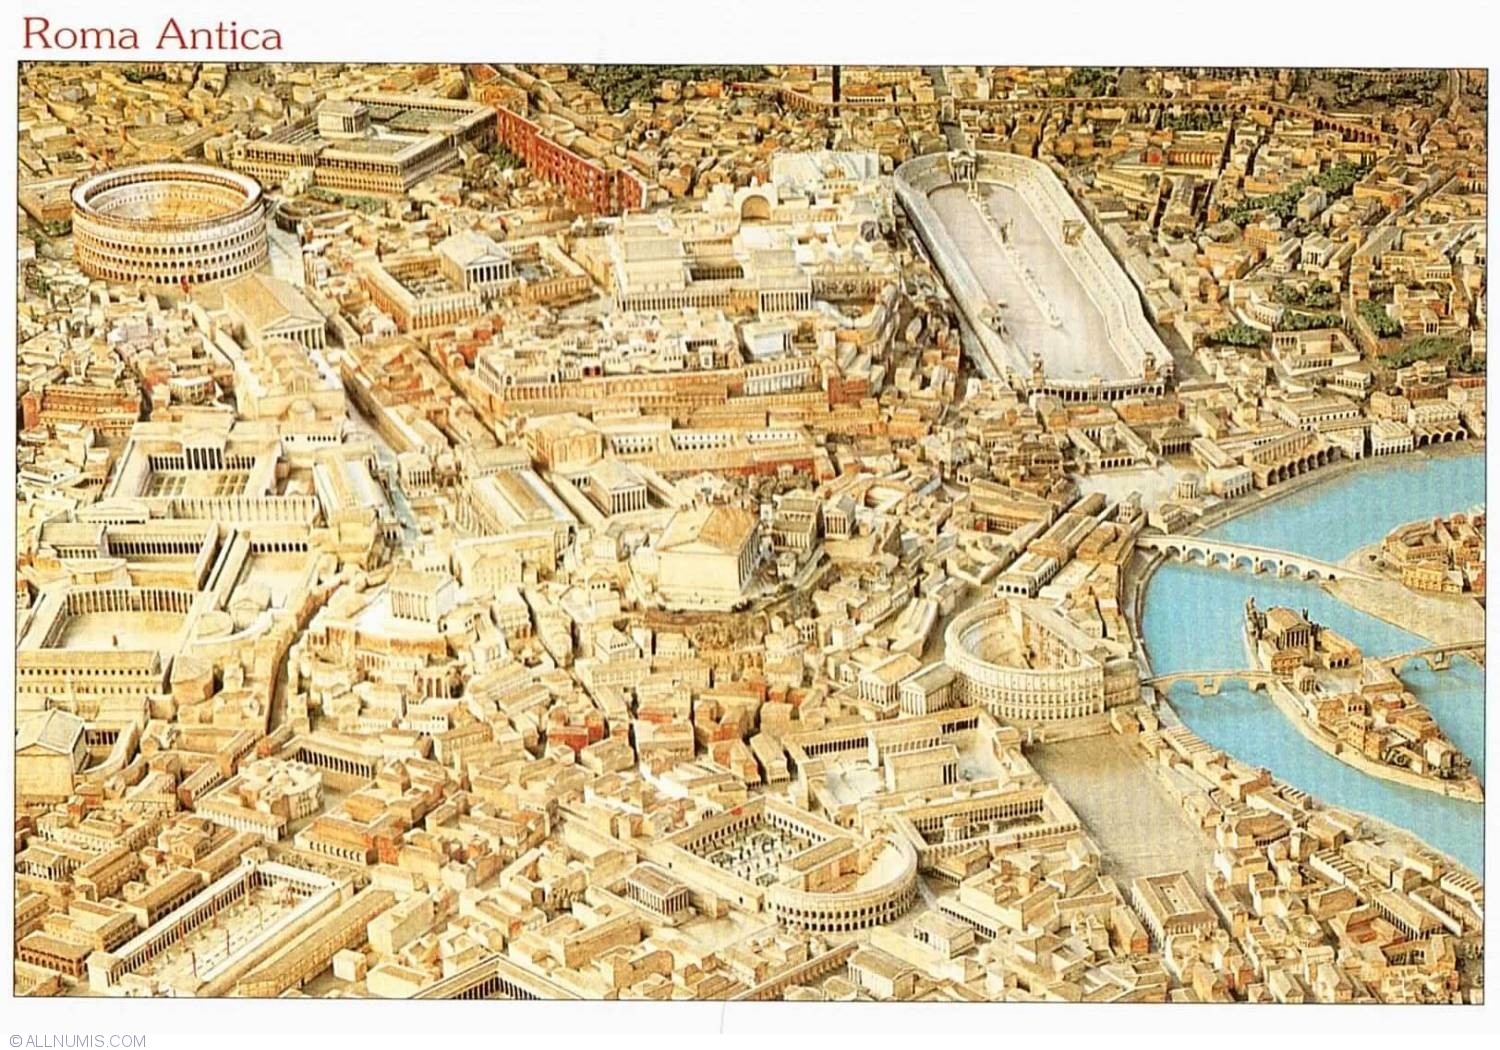 Roma Antica 2012, Rome and Vatican city - Italy - Postcard ...